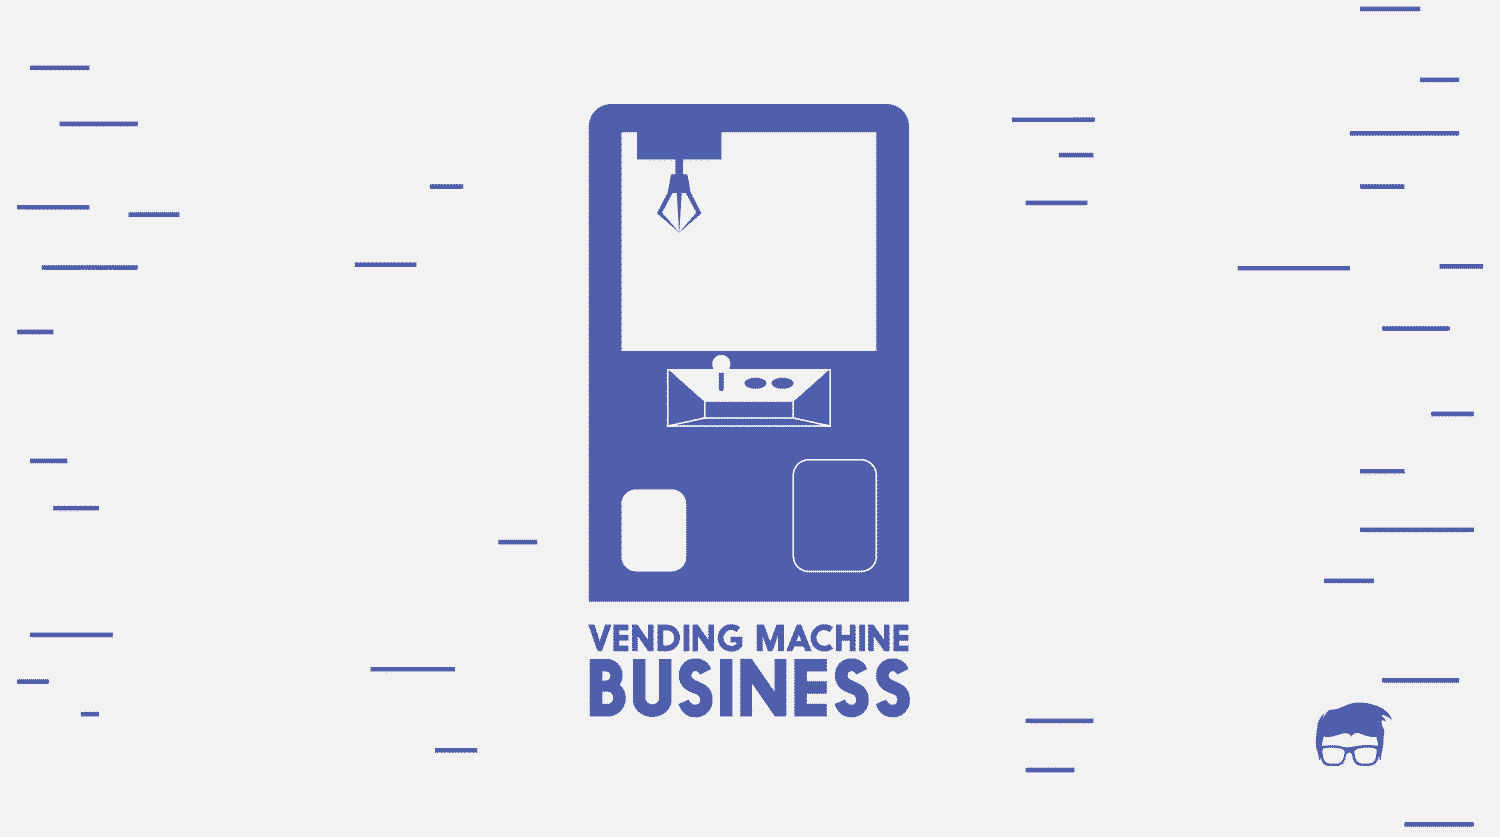 How to Start a Vending Machine Business | Feedough